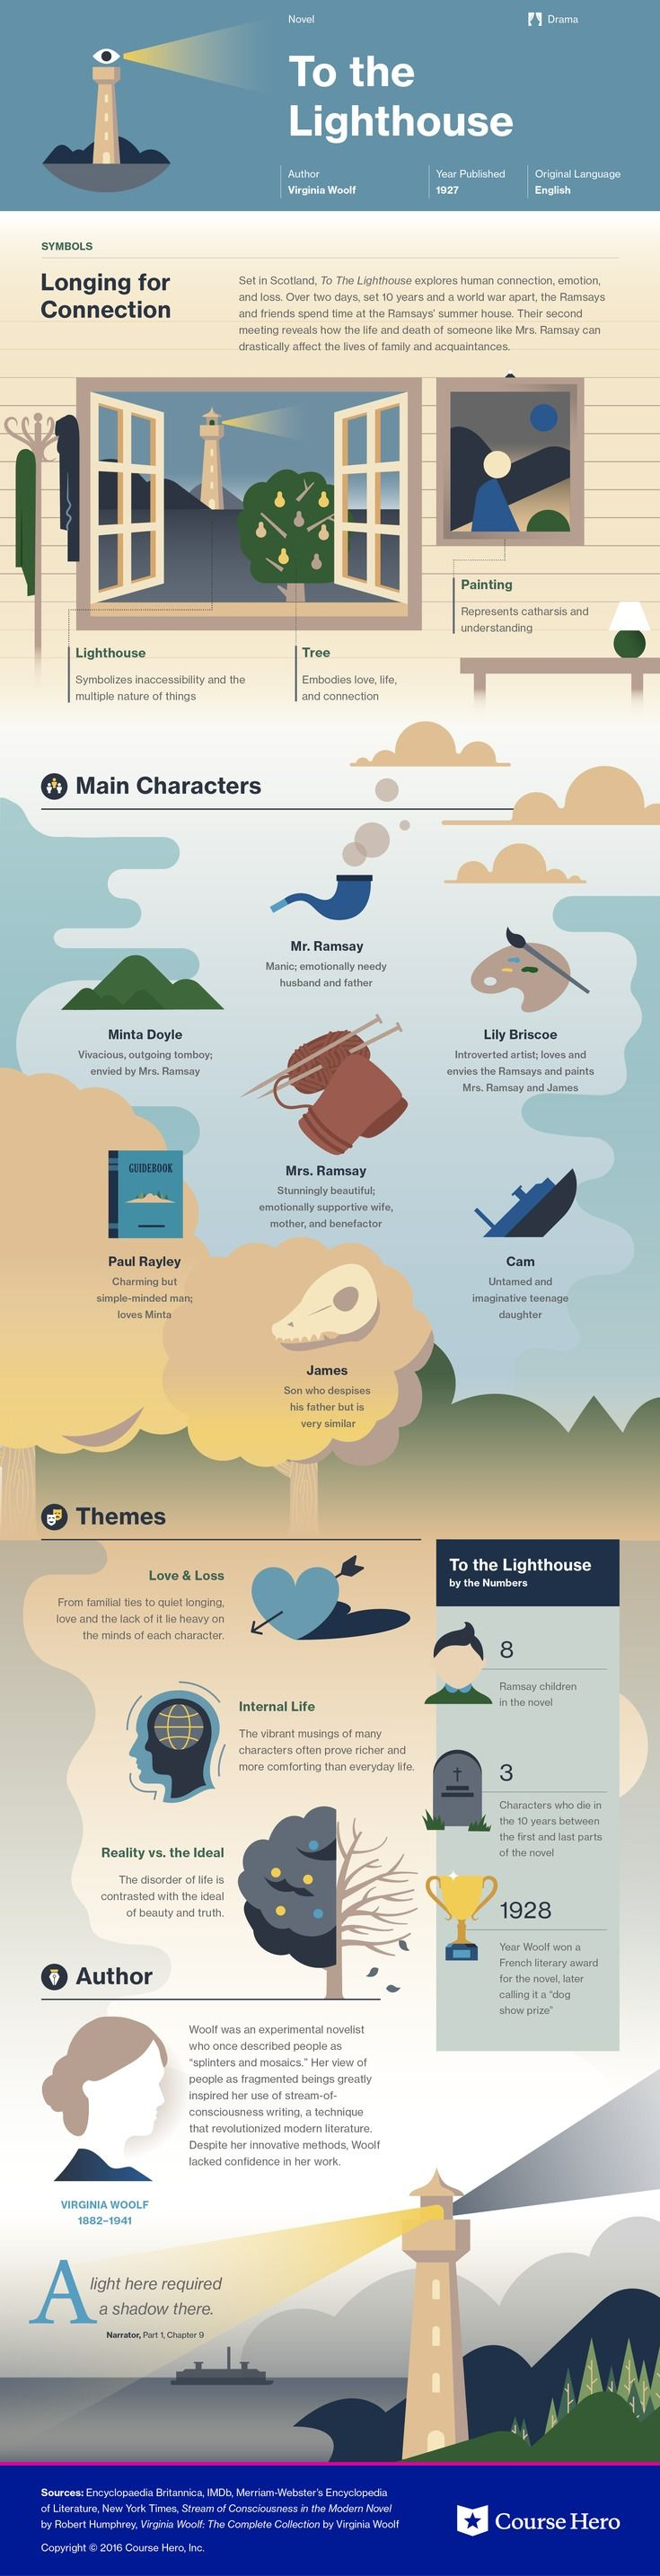 to the lighthouse infographic course hero literature to the lighthouse infographic course hero